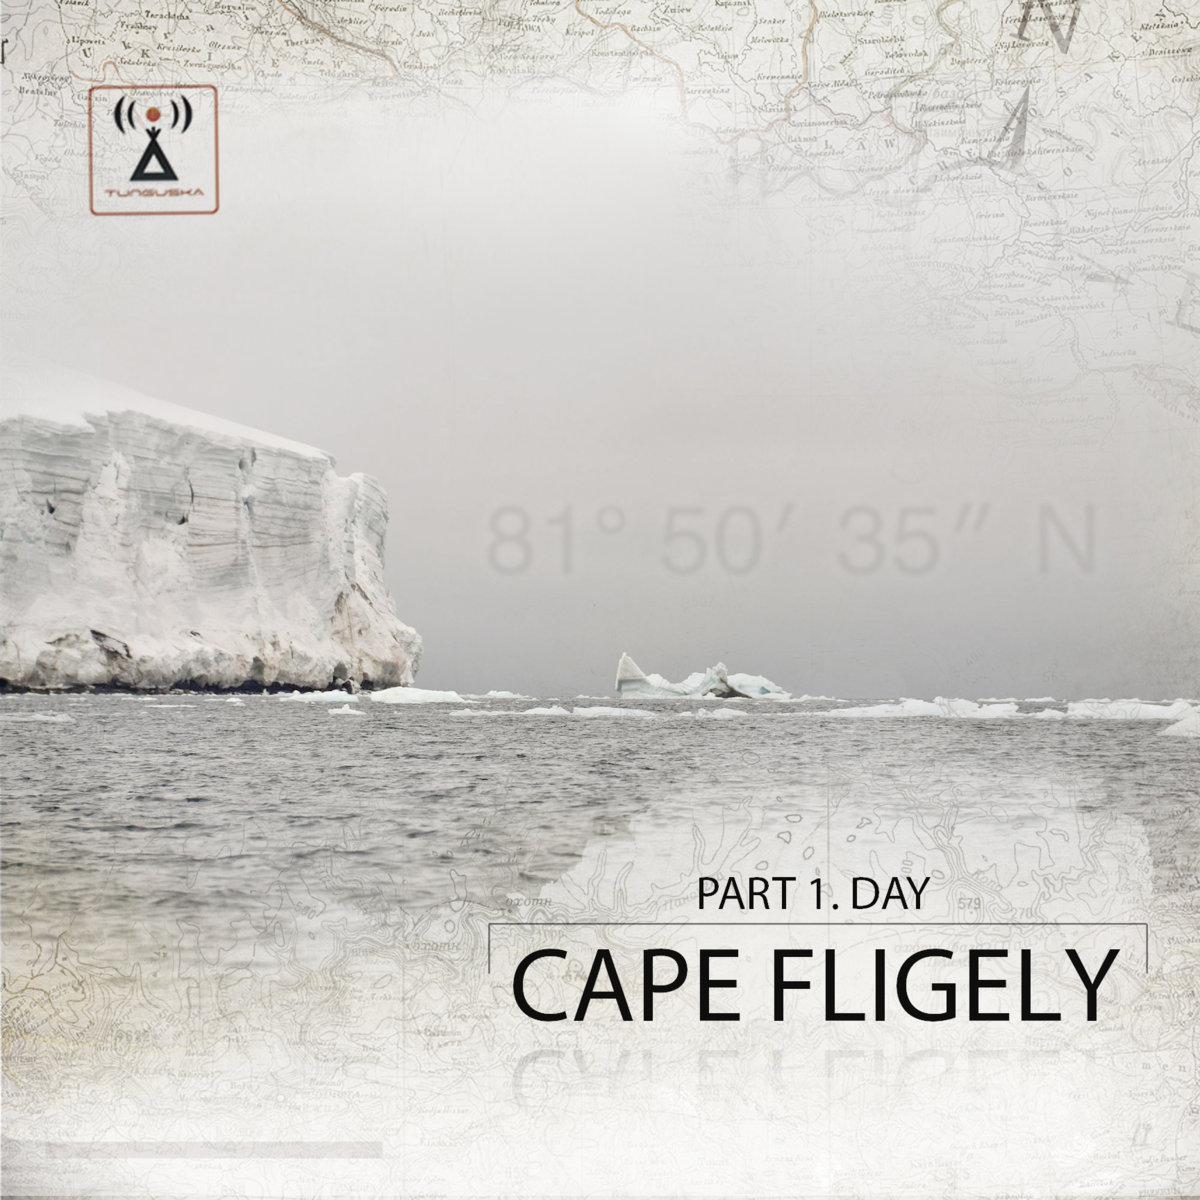 Point - Cape Fligely. Part 1. Day